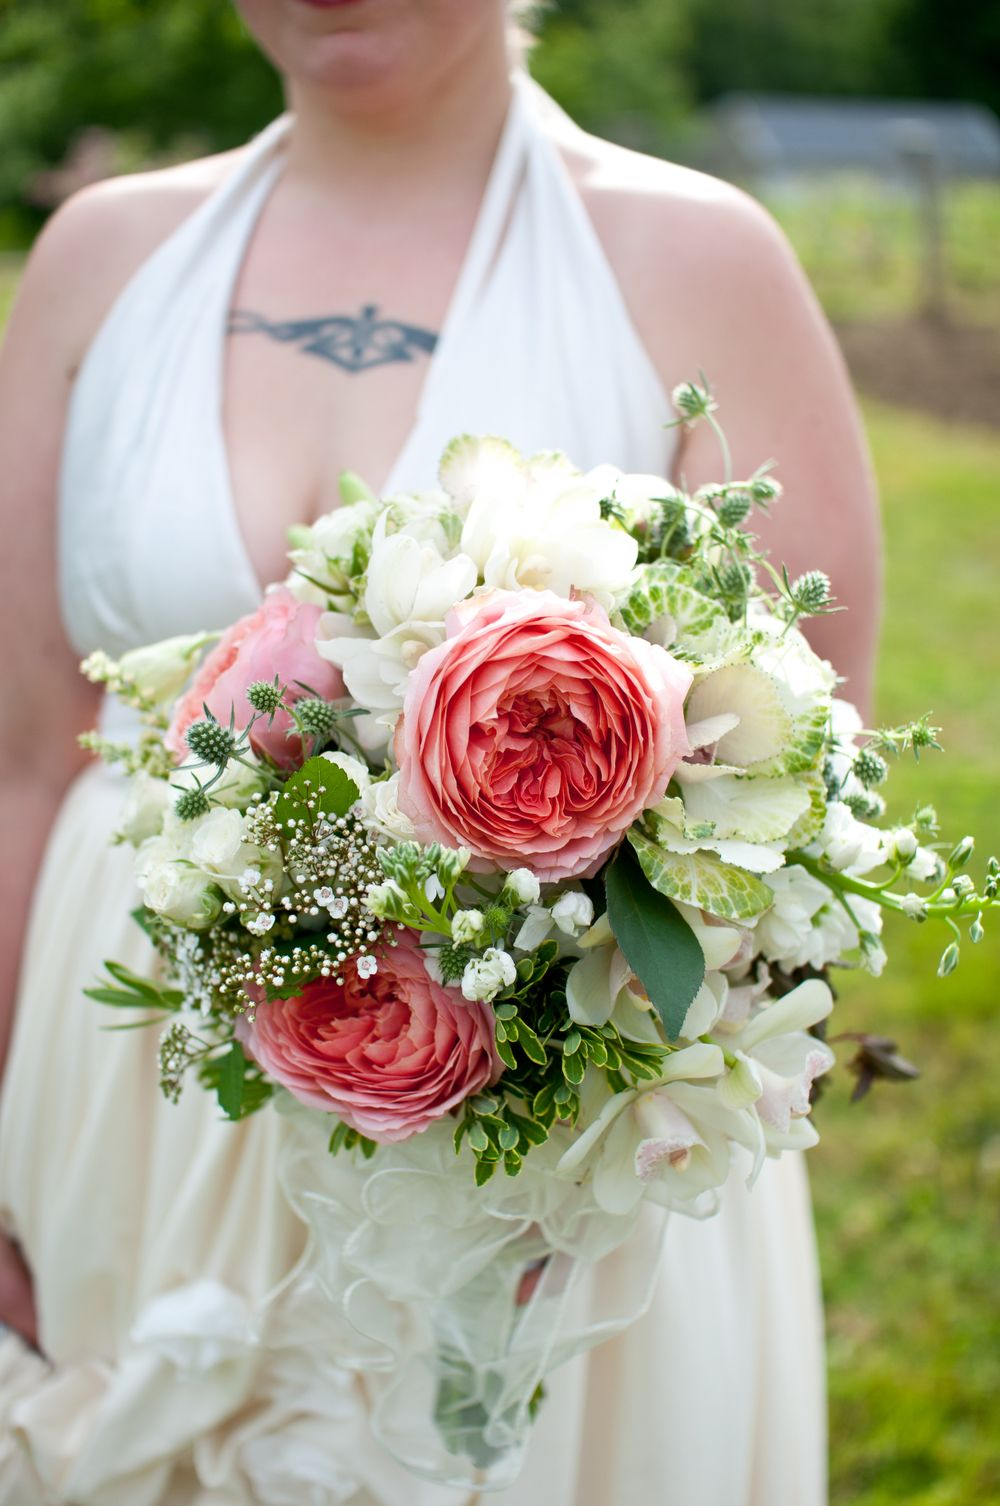 Lincolnville Maine Wedding Officiant Wedding officiant